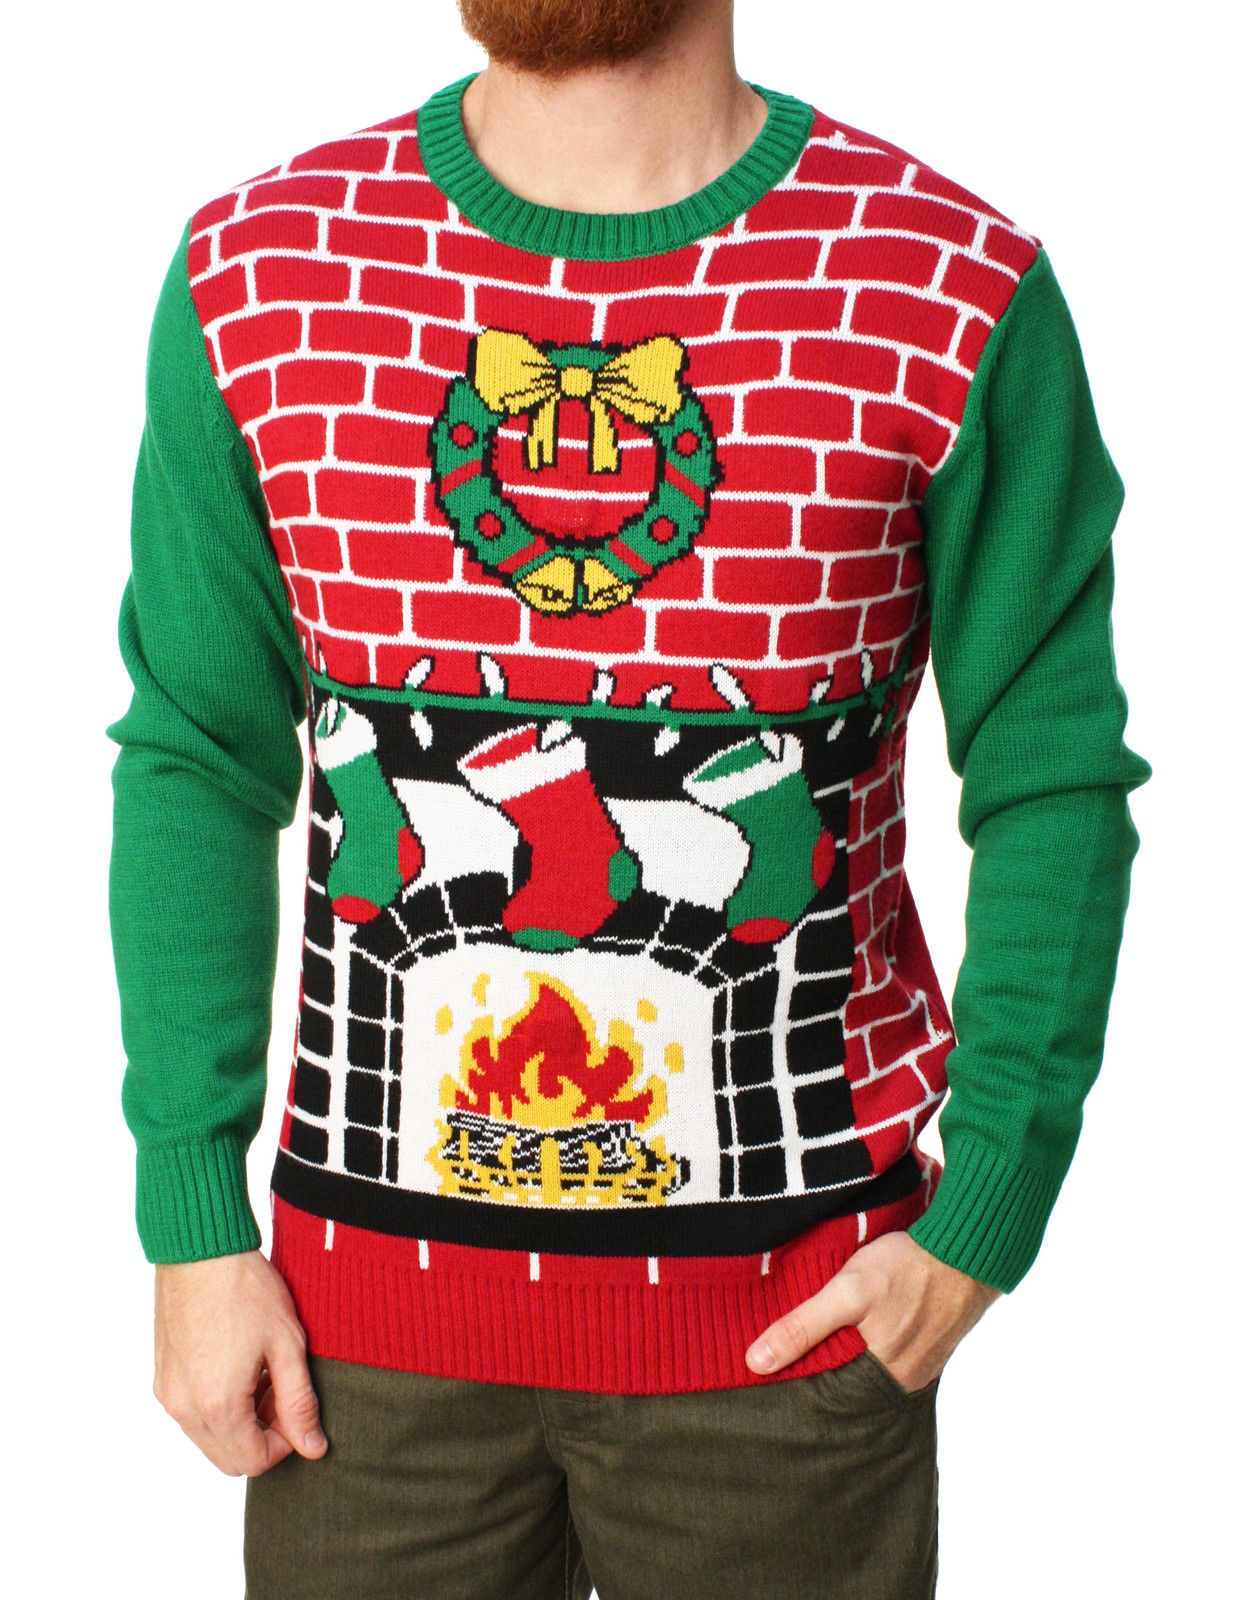 10 Ugly Christmas Sweaters at Pretty Prices